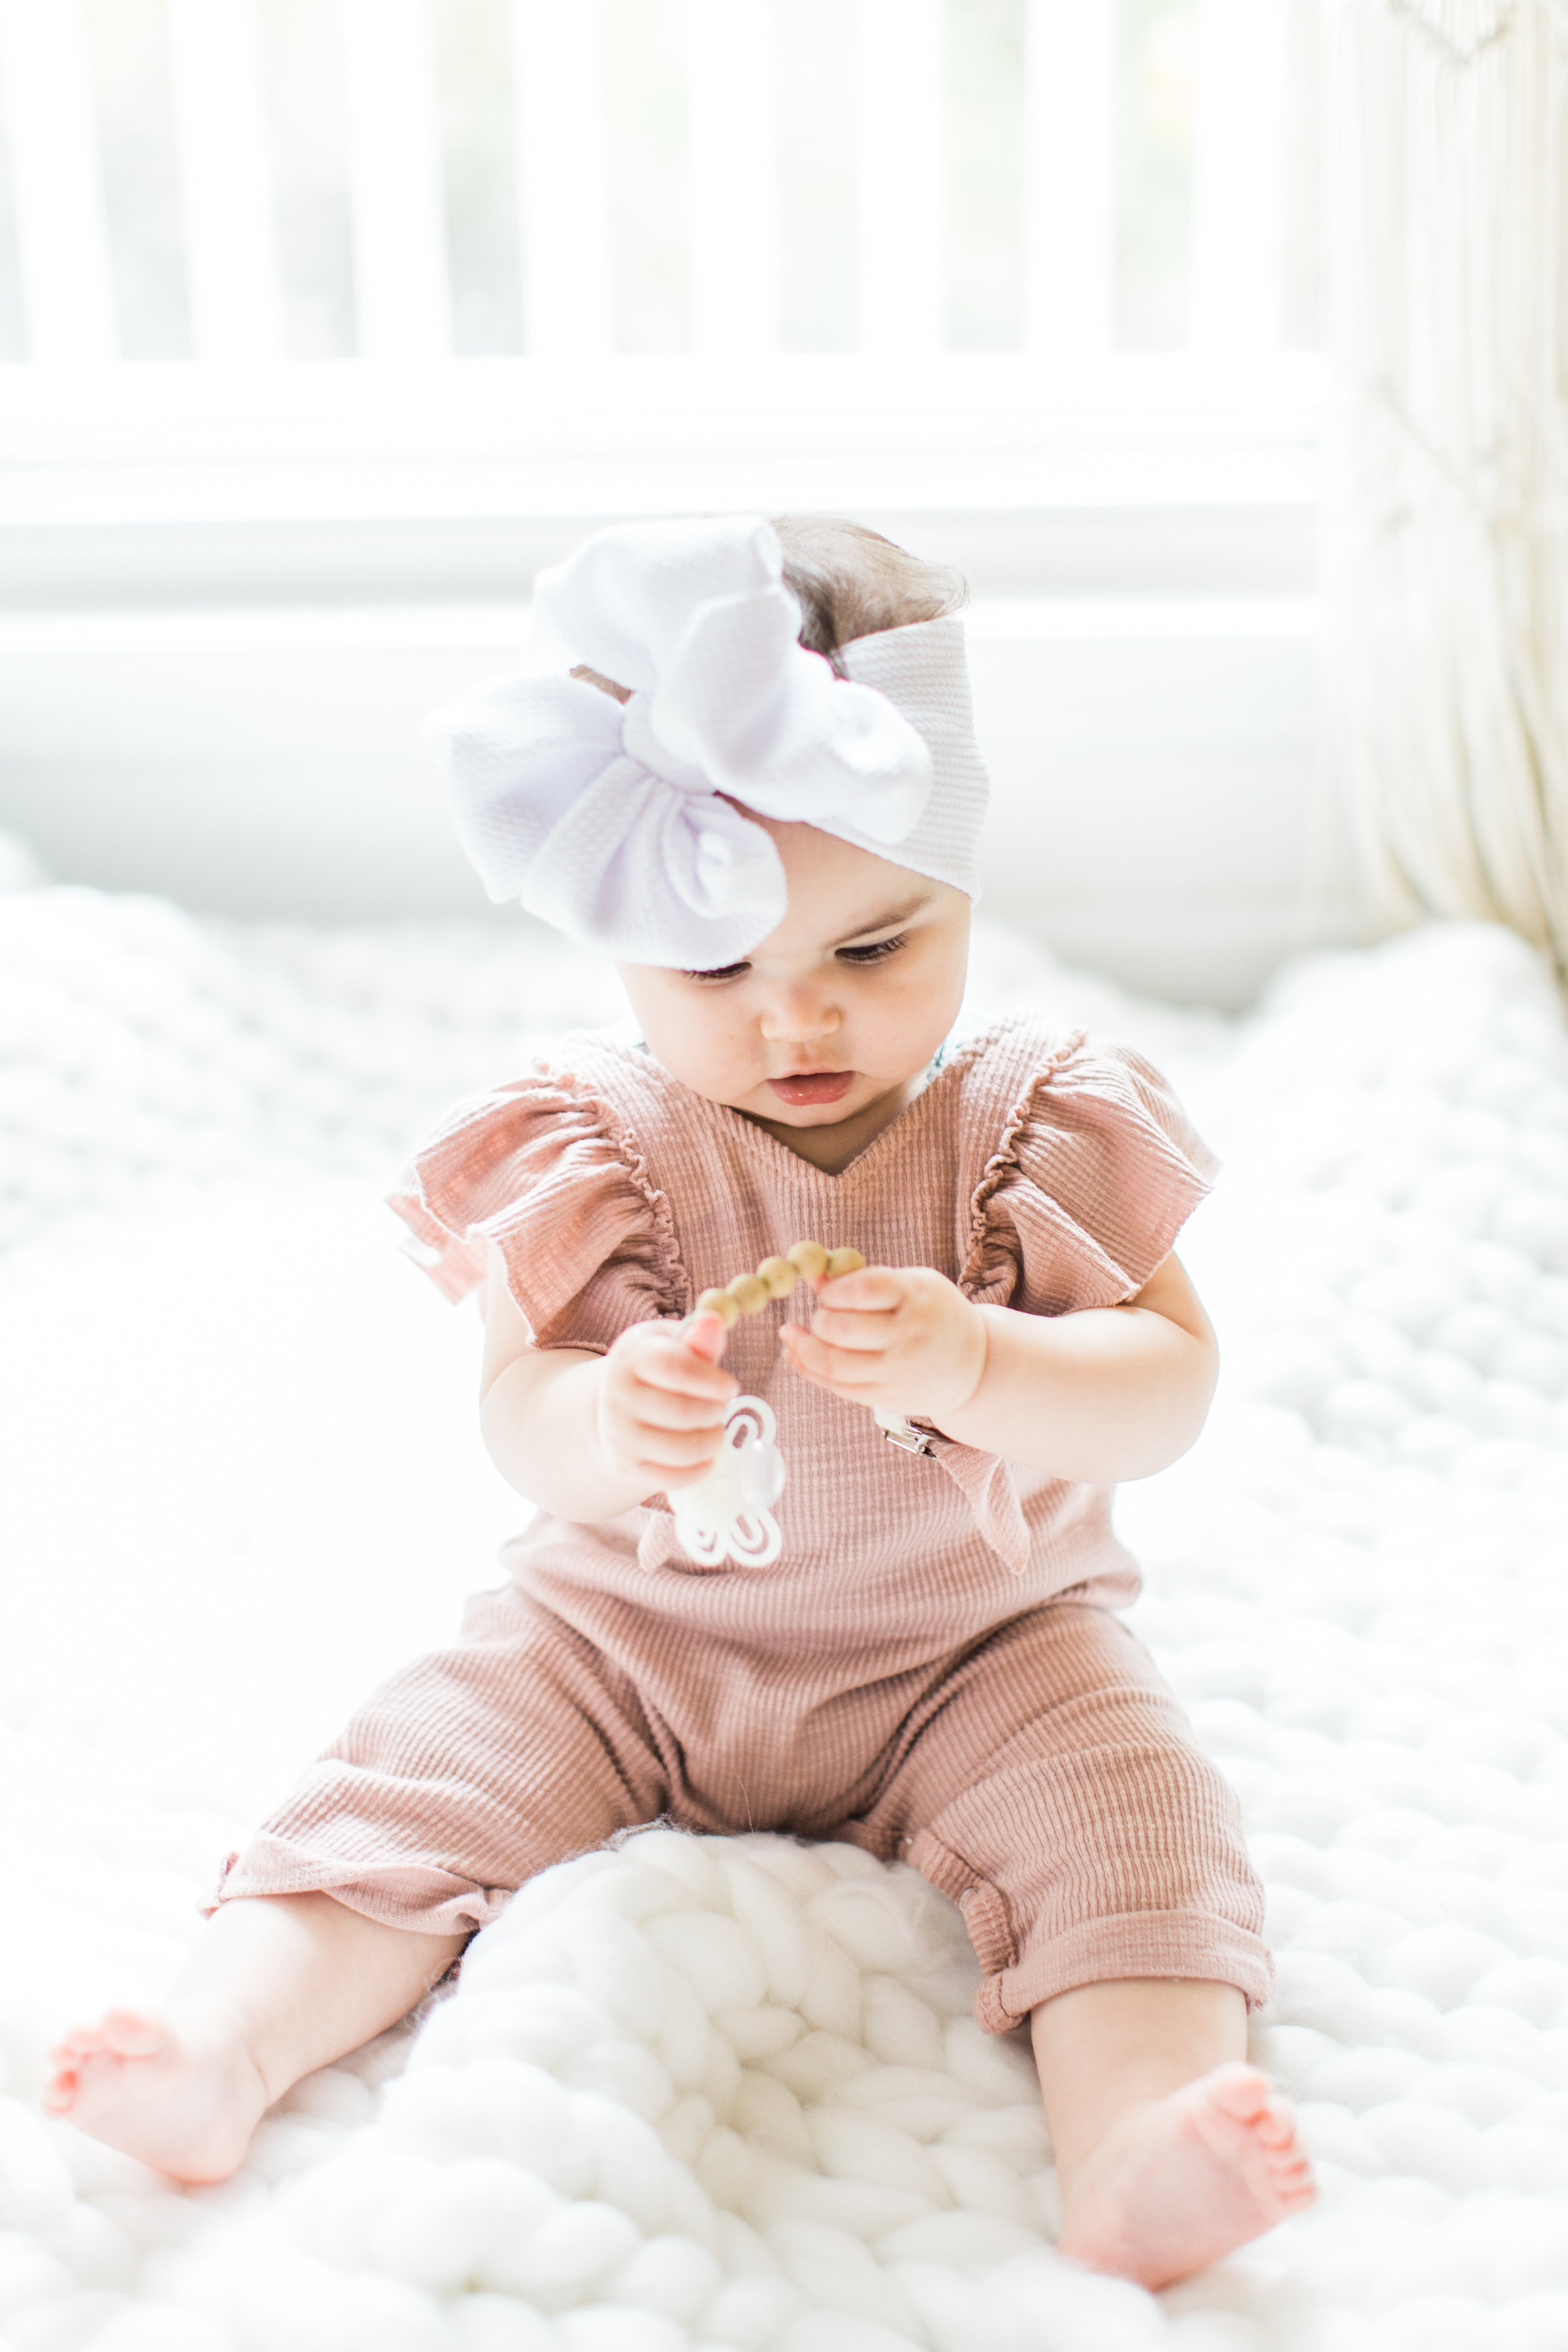 Having a baby with acid reflux can feel like the most exhausting uphill battle when you're a new parent. These are 7 tips and tricks for helping babies with reflux (that actually work!), plus a few hallmark signs that your baby does in fact have reflux. Click through for the details. #acidreflux #refluxbabies #babyreflux #infantreflux #gerd #colic #howtotreatreflux | glitterinc.com | @glitterinc